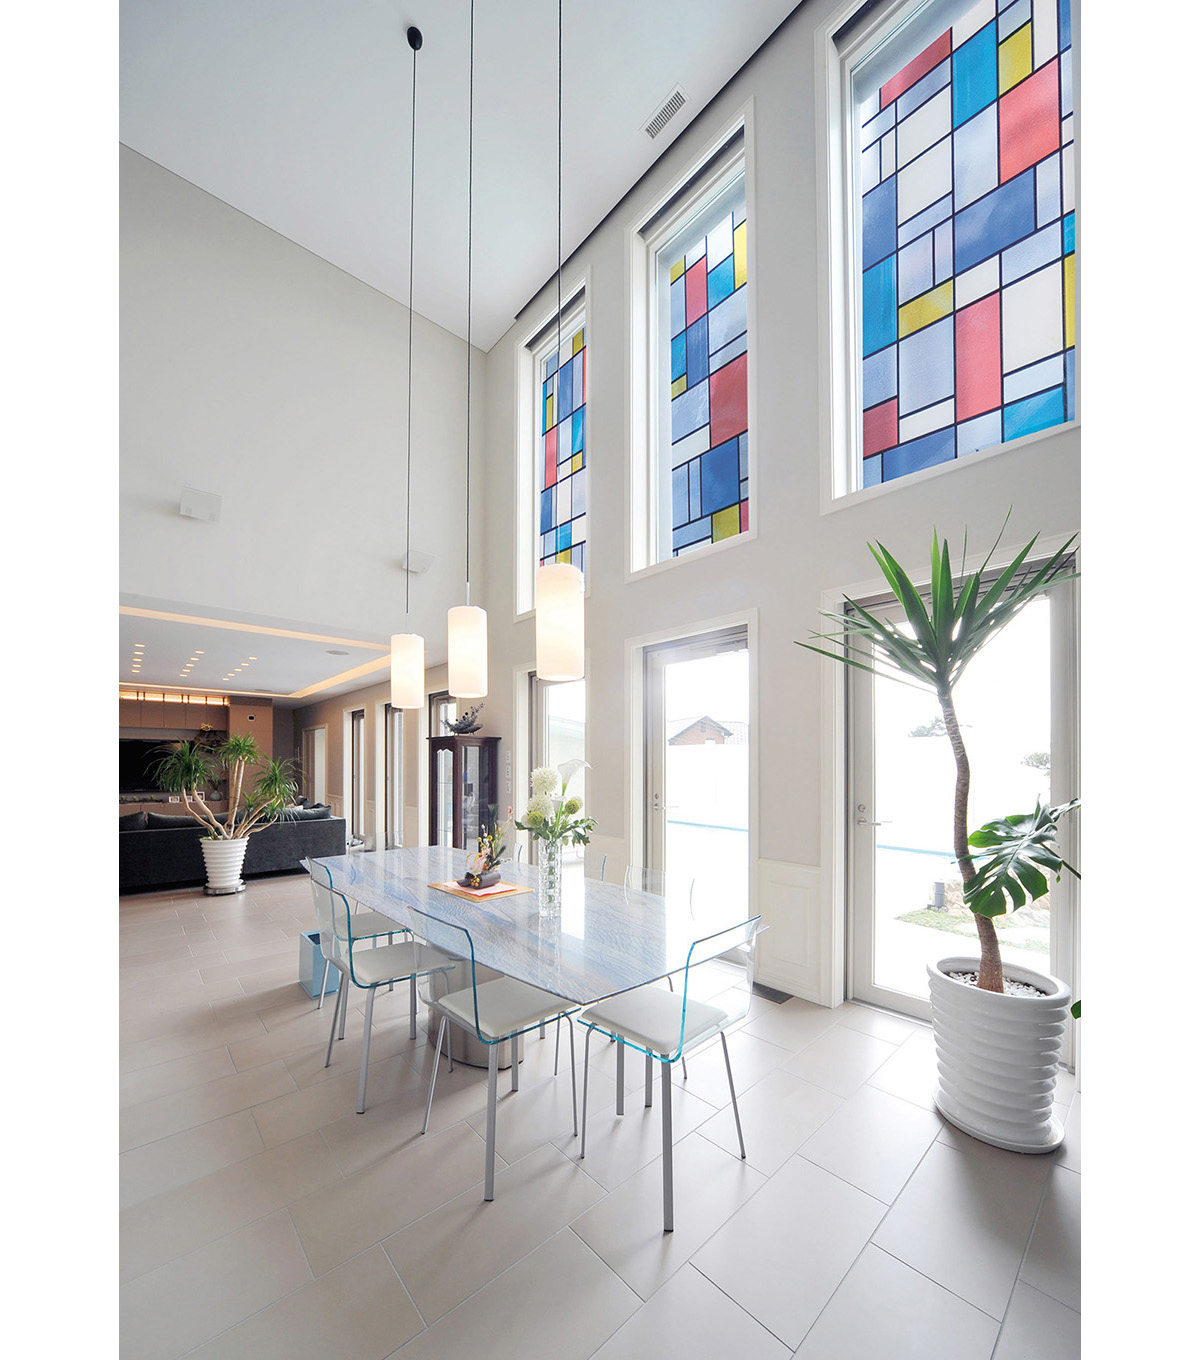 Peel & Stick Window Film-Mondrian